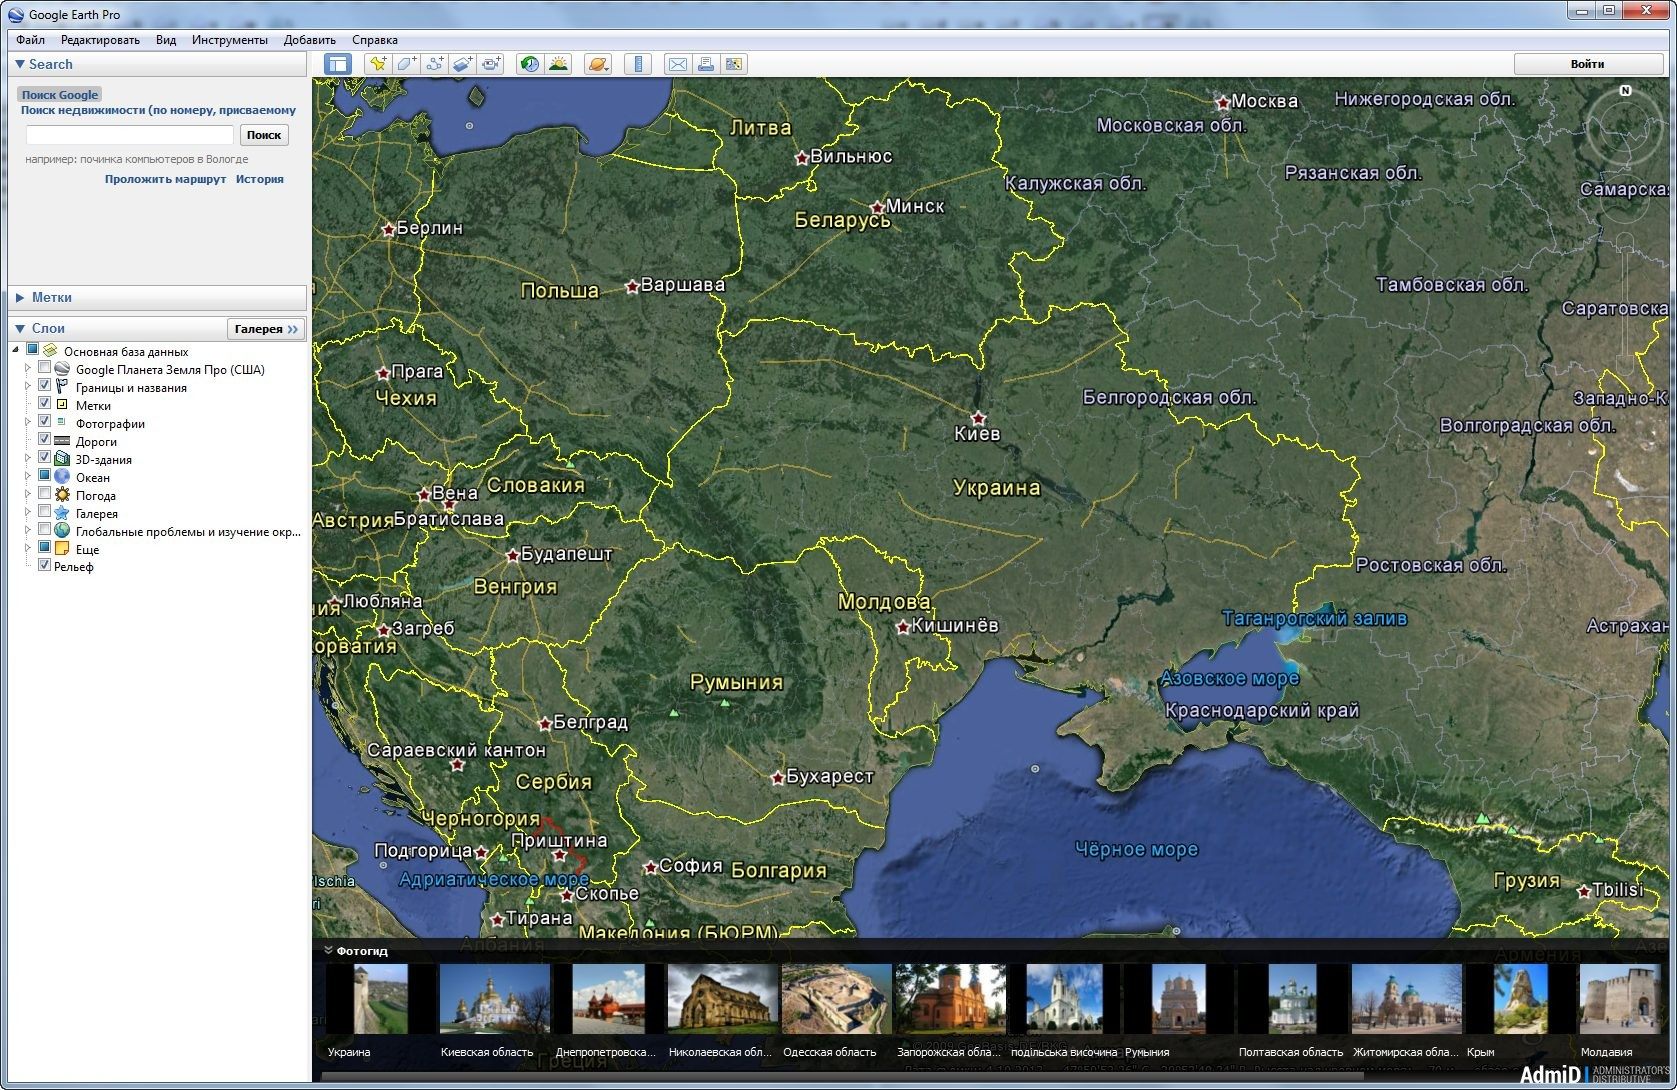 Google Earth ver 7.1.7.2606 RU final Free + Professional Plus Edition + RePack + Portable